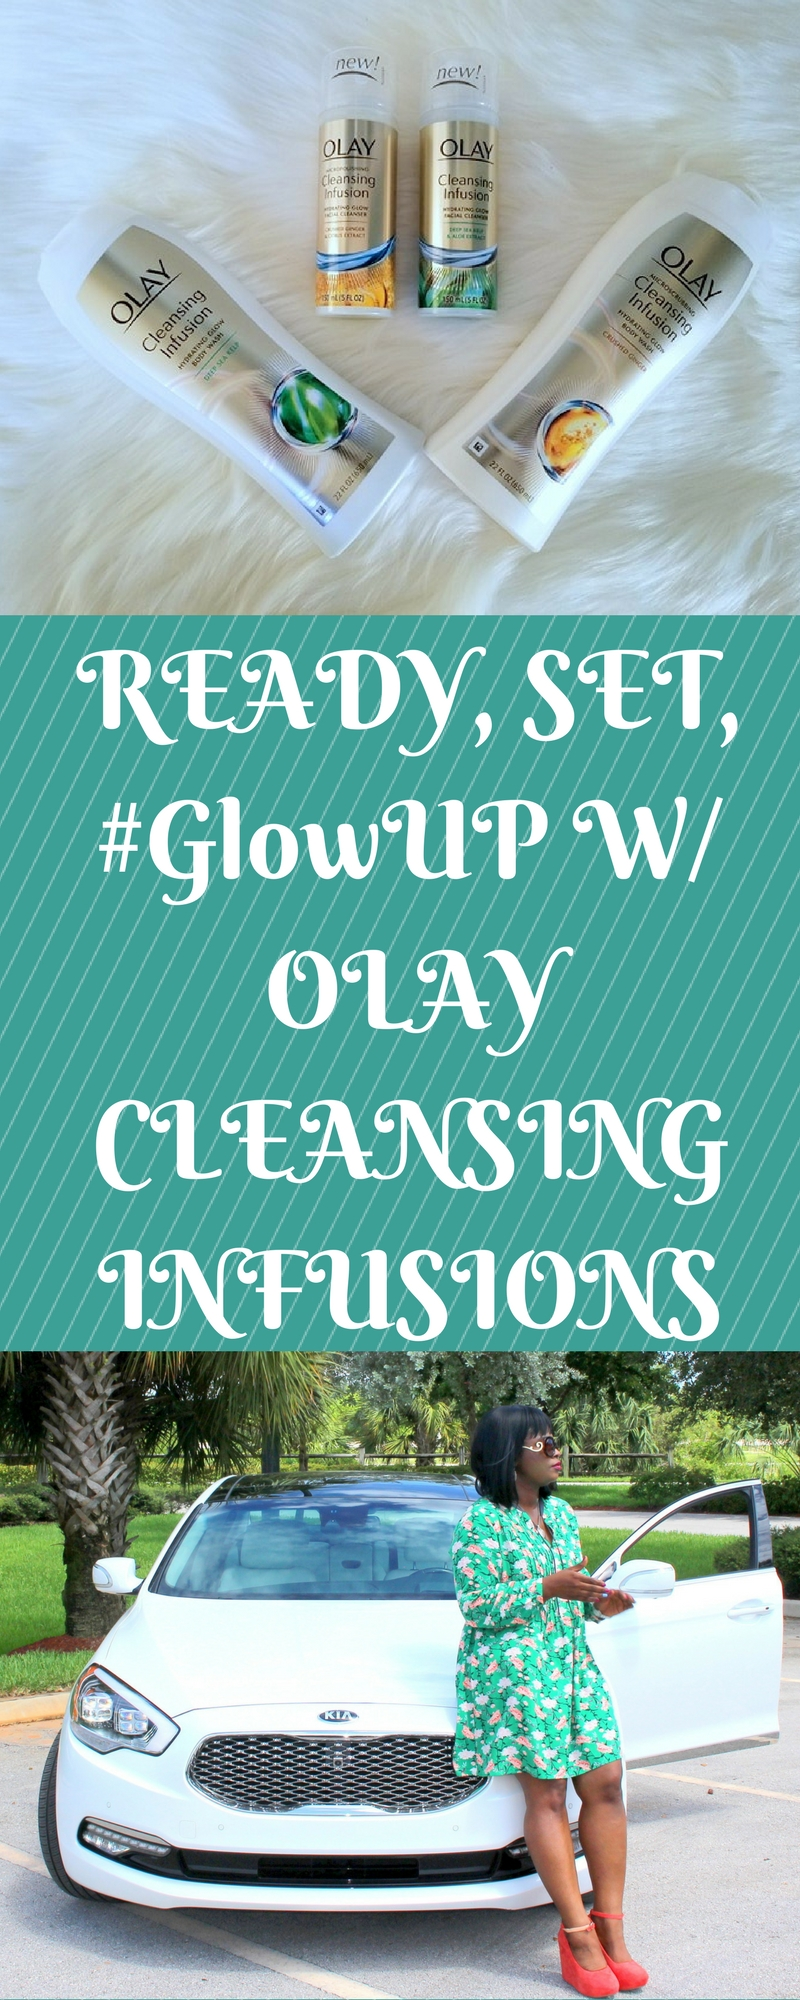 READY, SET, #GlowUP W/OLAY CLEANSING INFUSION